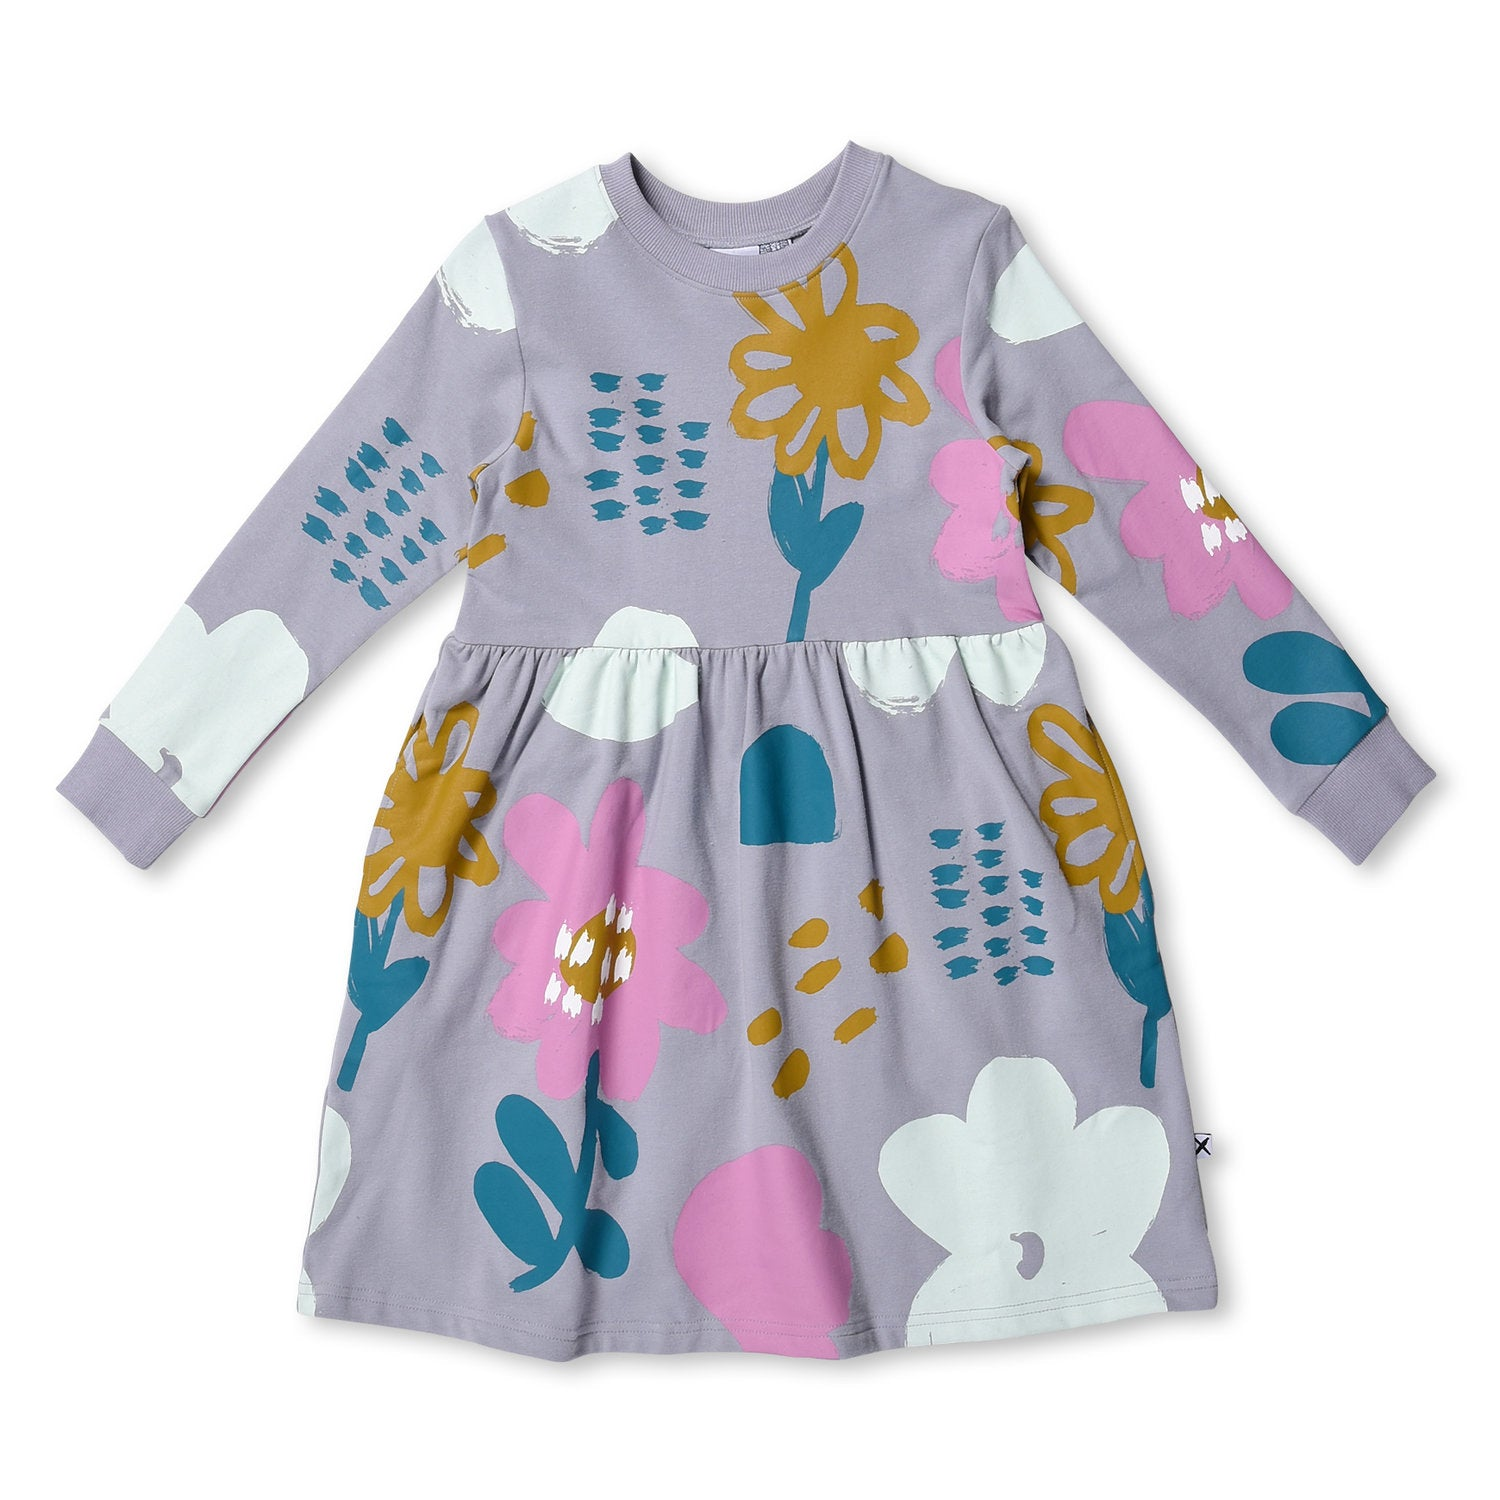 PREORDER Minti Meadow Jumper Dress